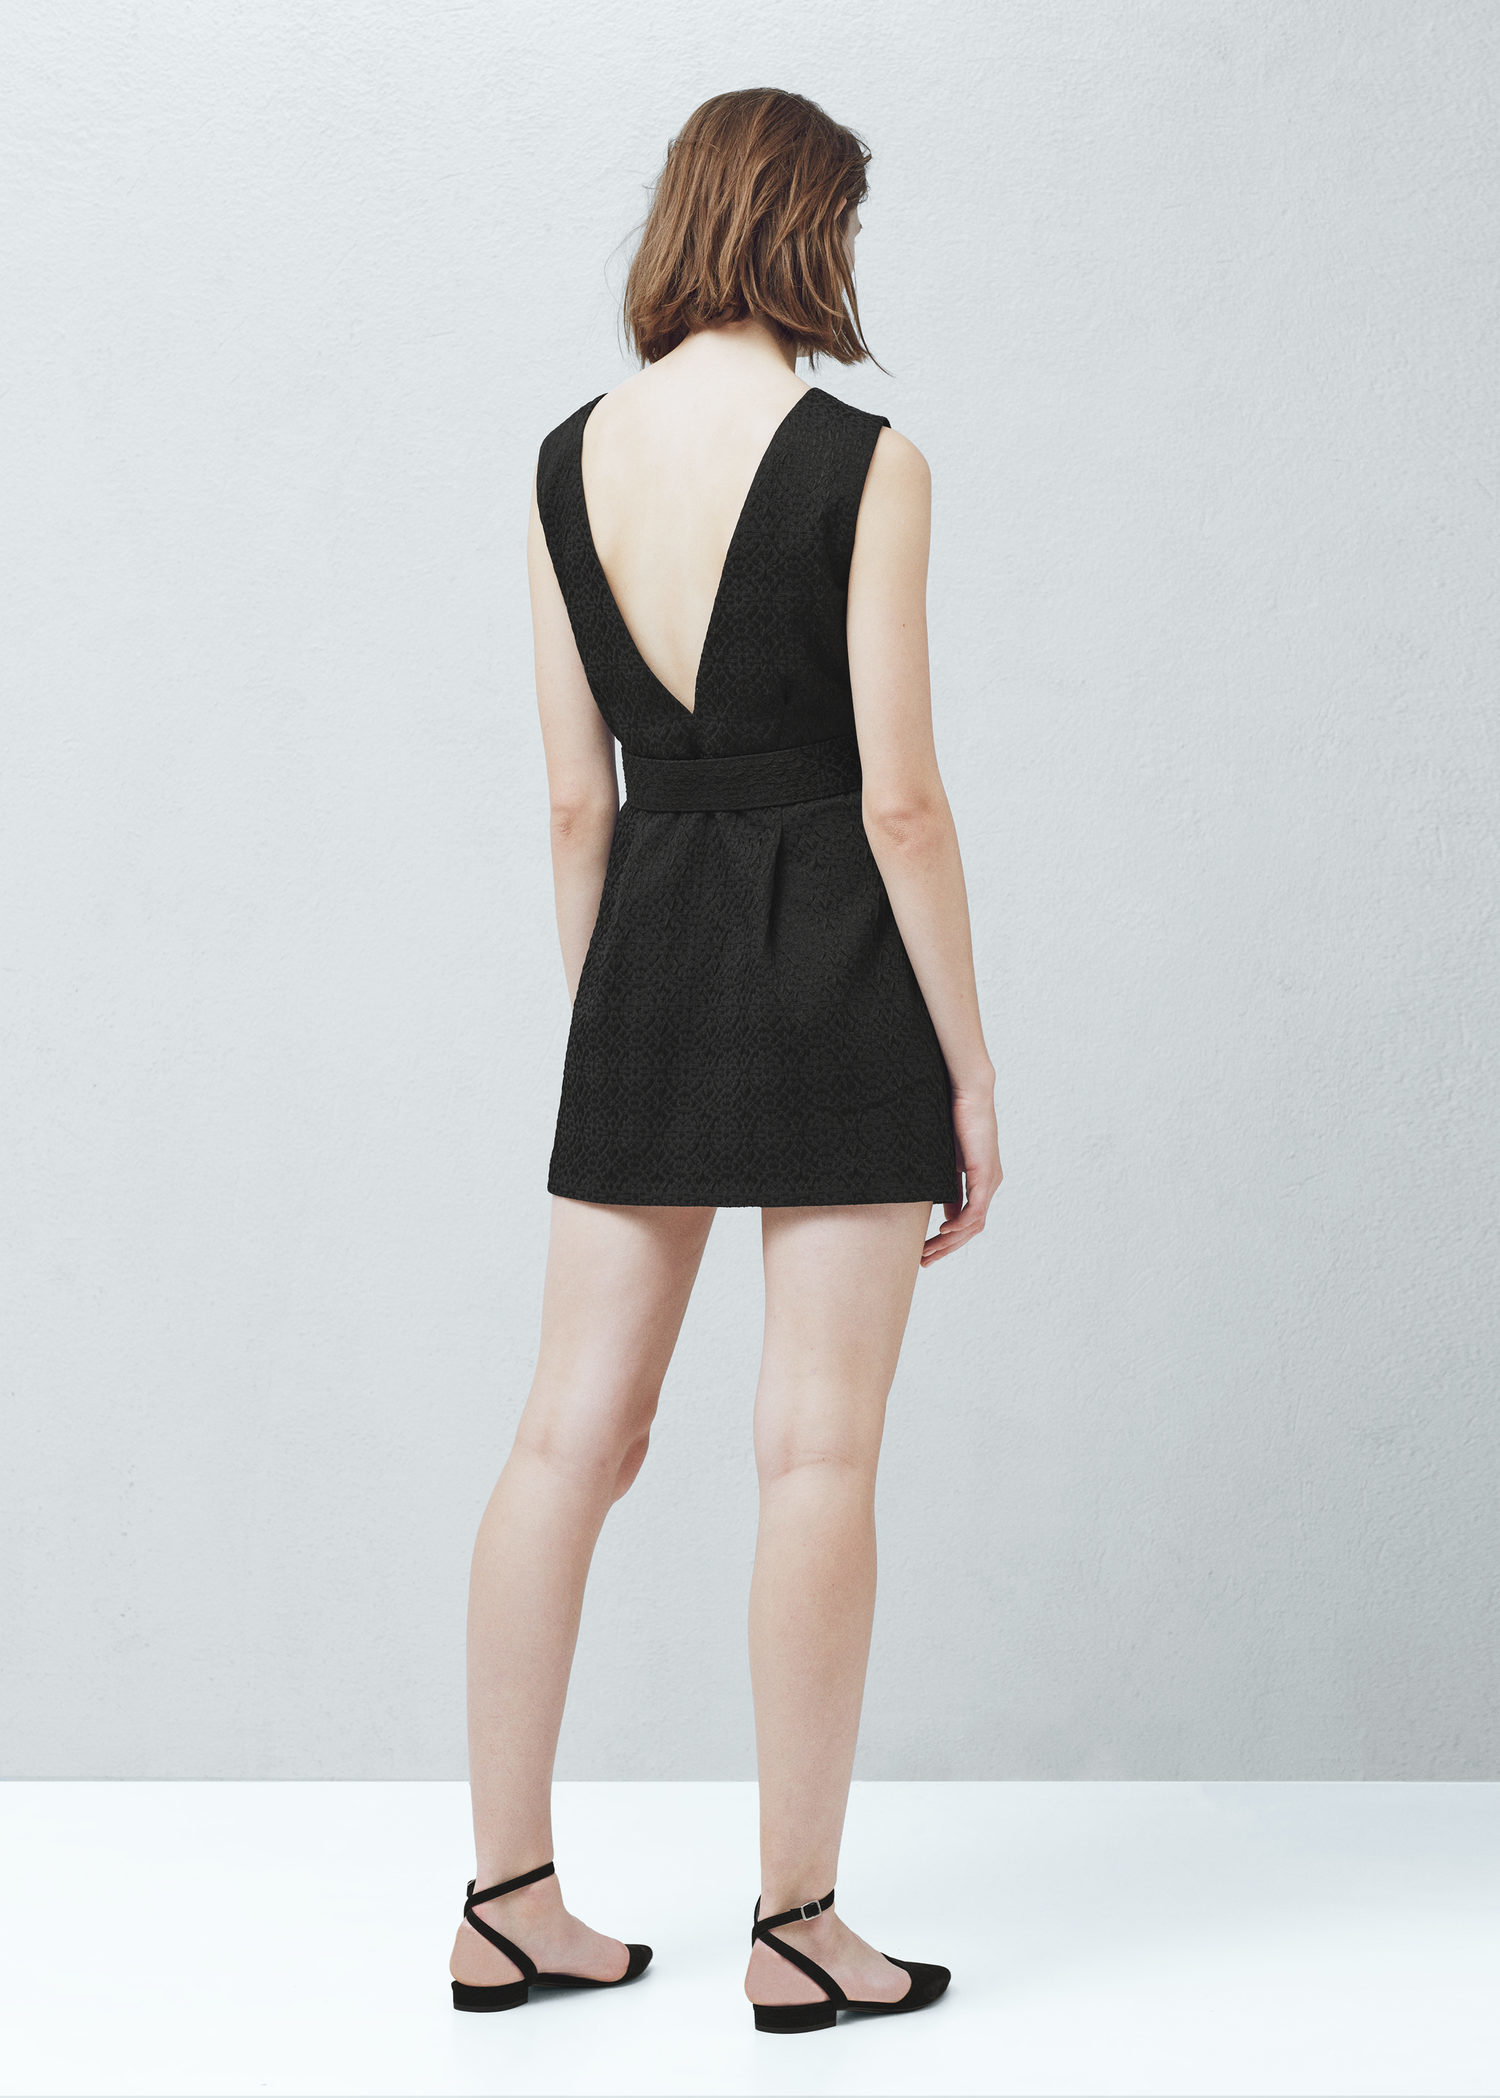 Lyst - Mango Textured Jacquard Dress in Black 7e61b9a41